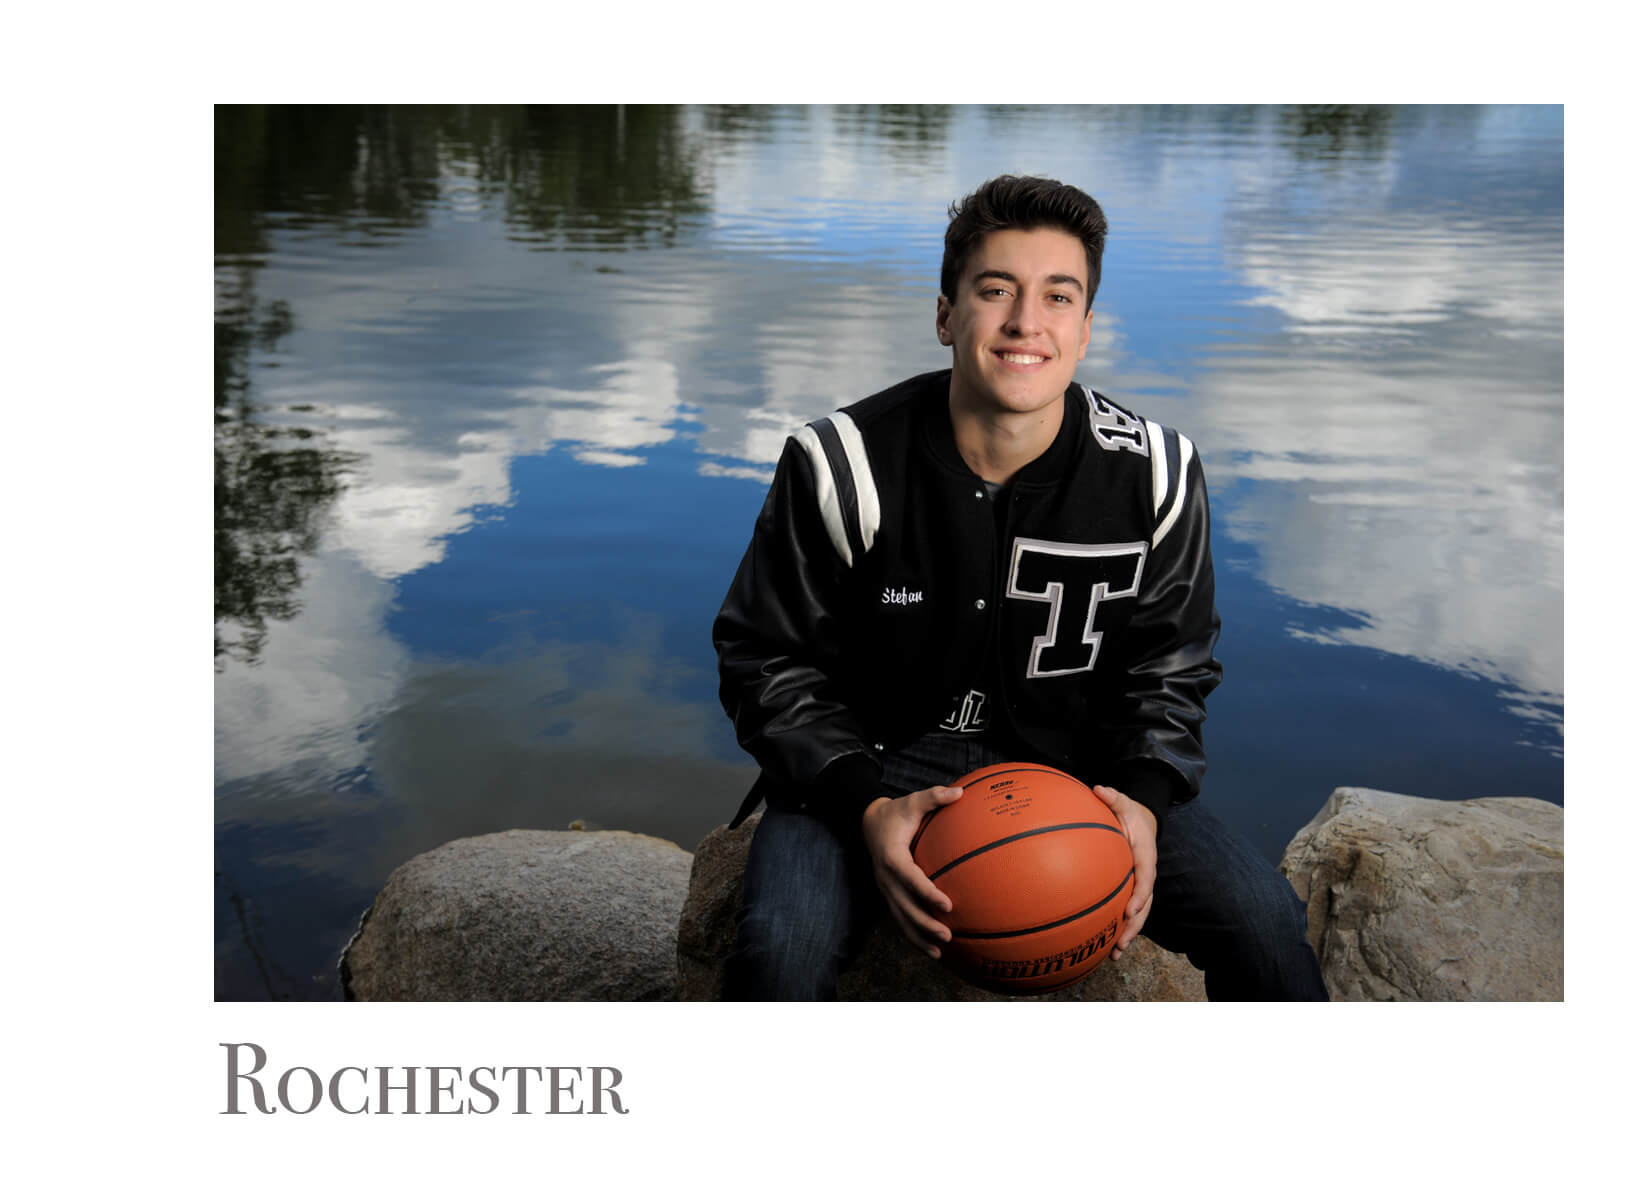 One of my favorite places to take senior photos is in the Rochester, Michigan area.